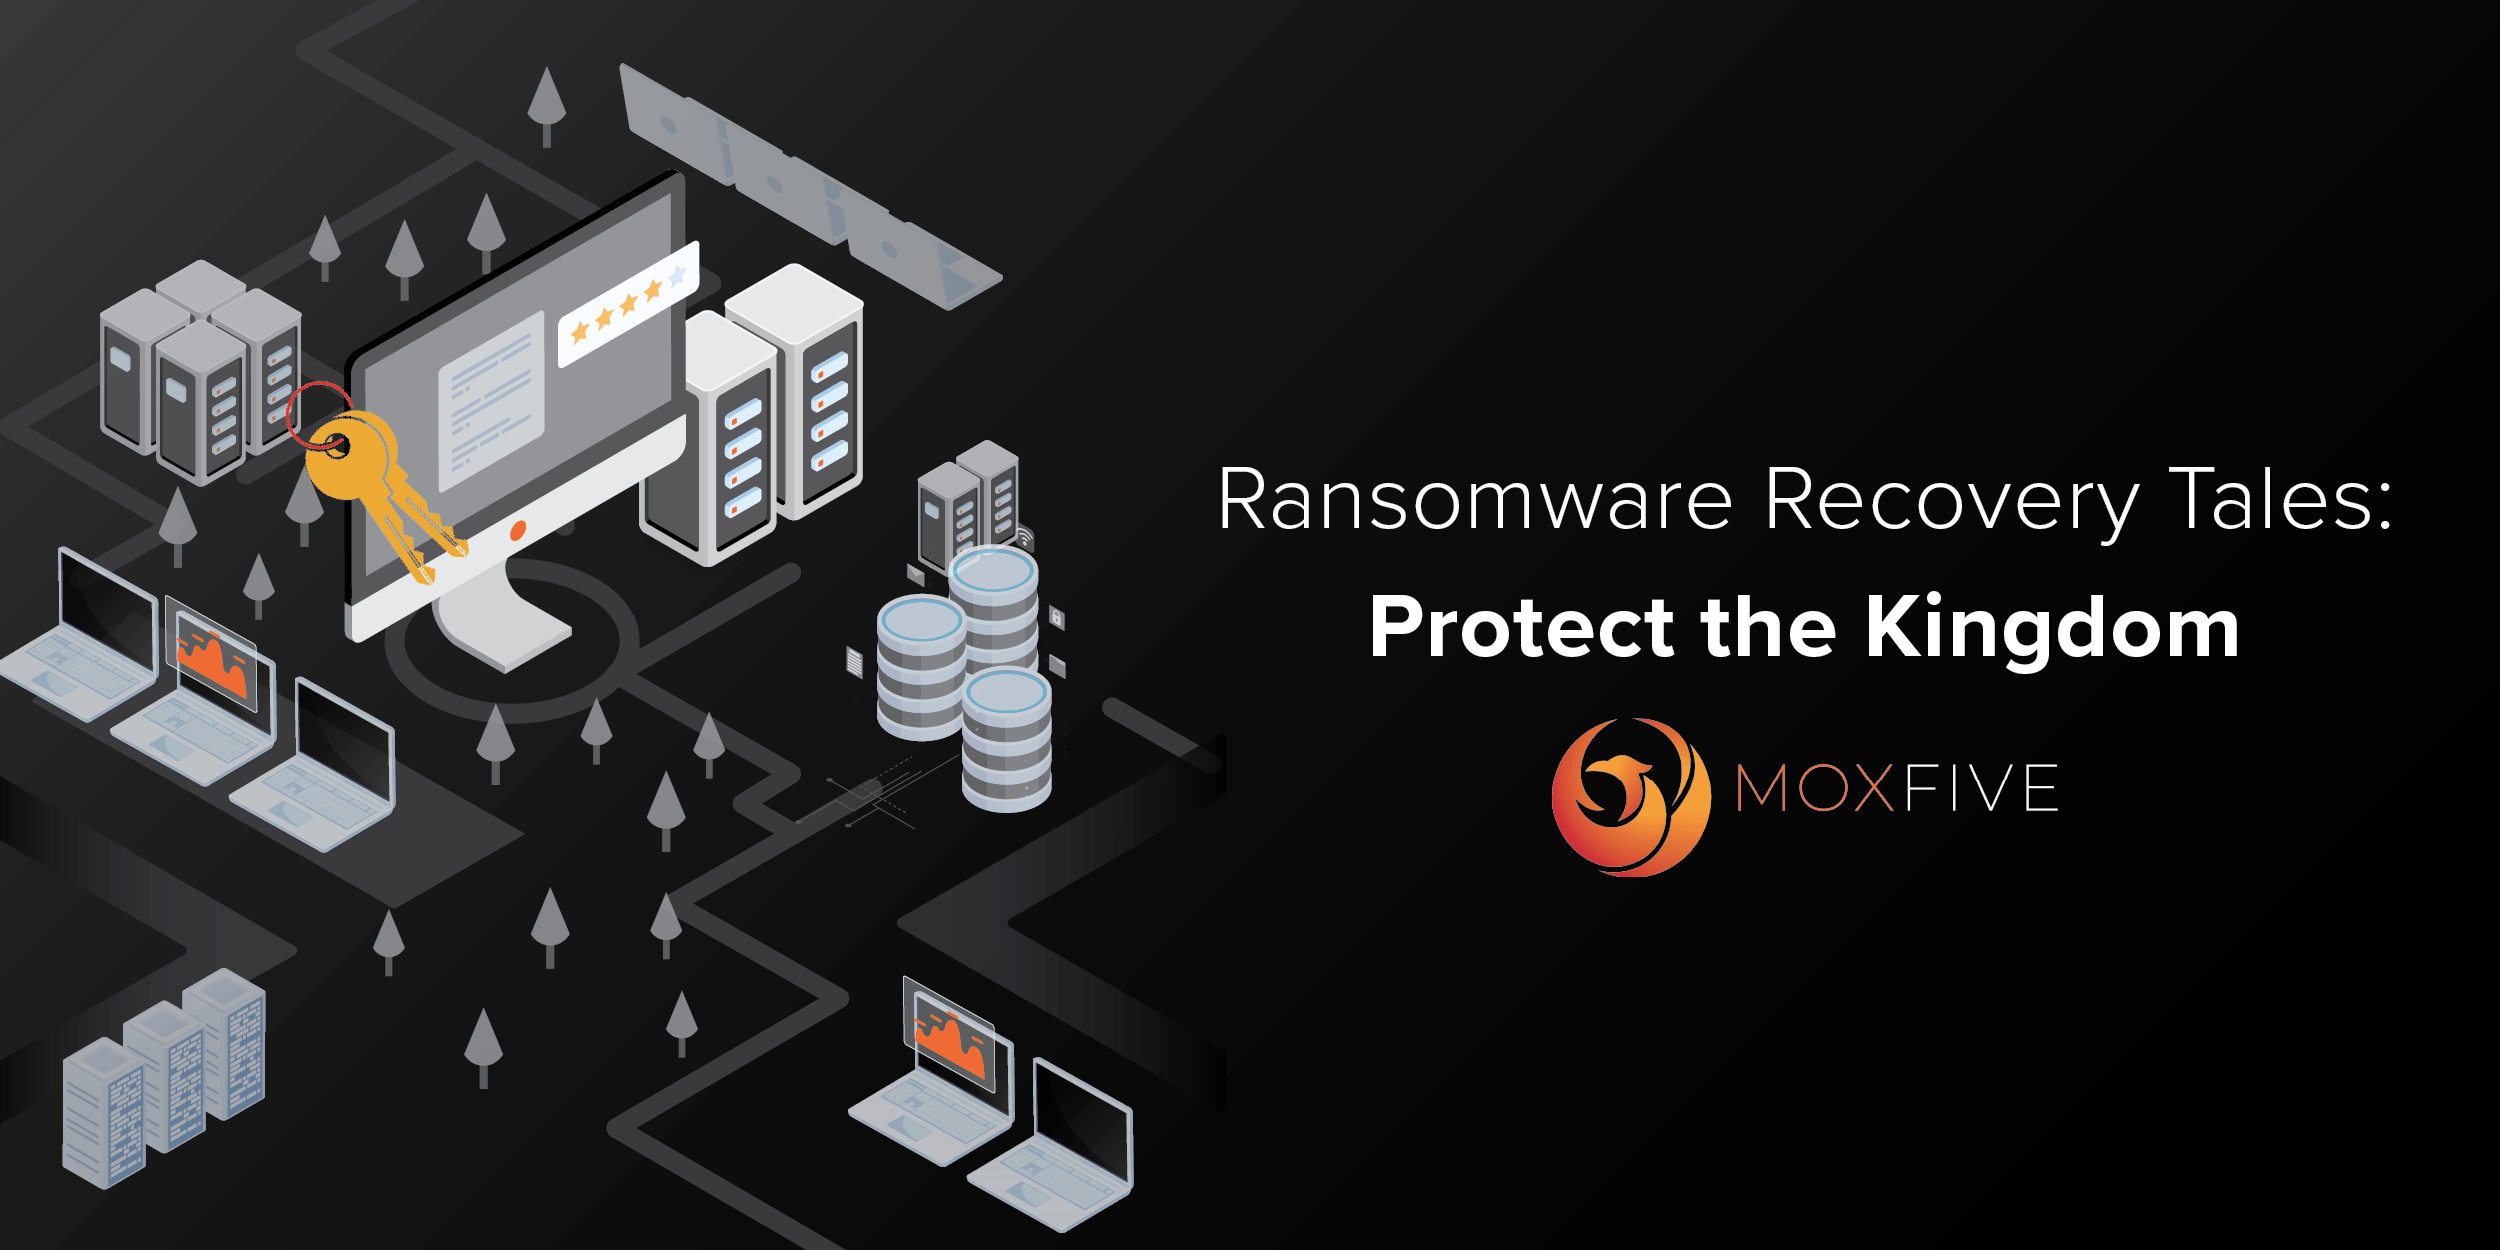 Ransomware Recovery Tales: Protect the Kingdom